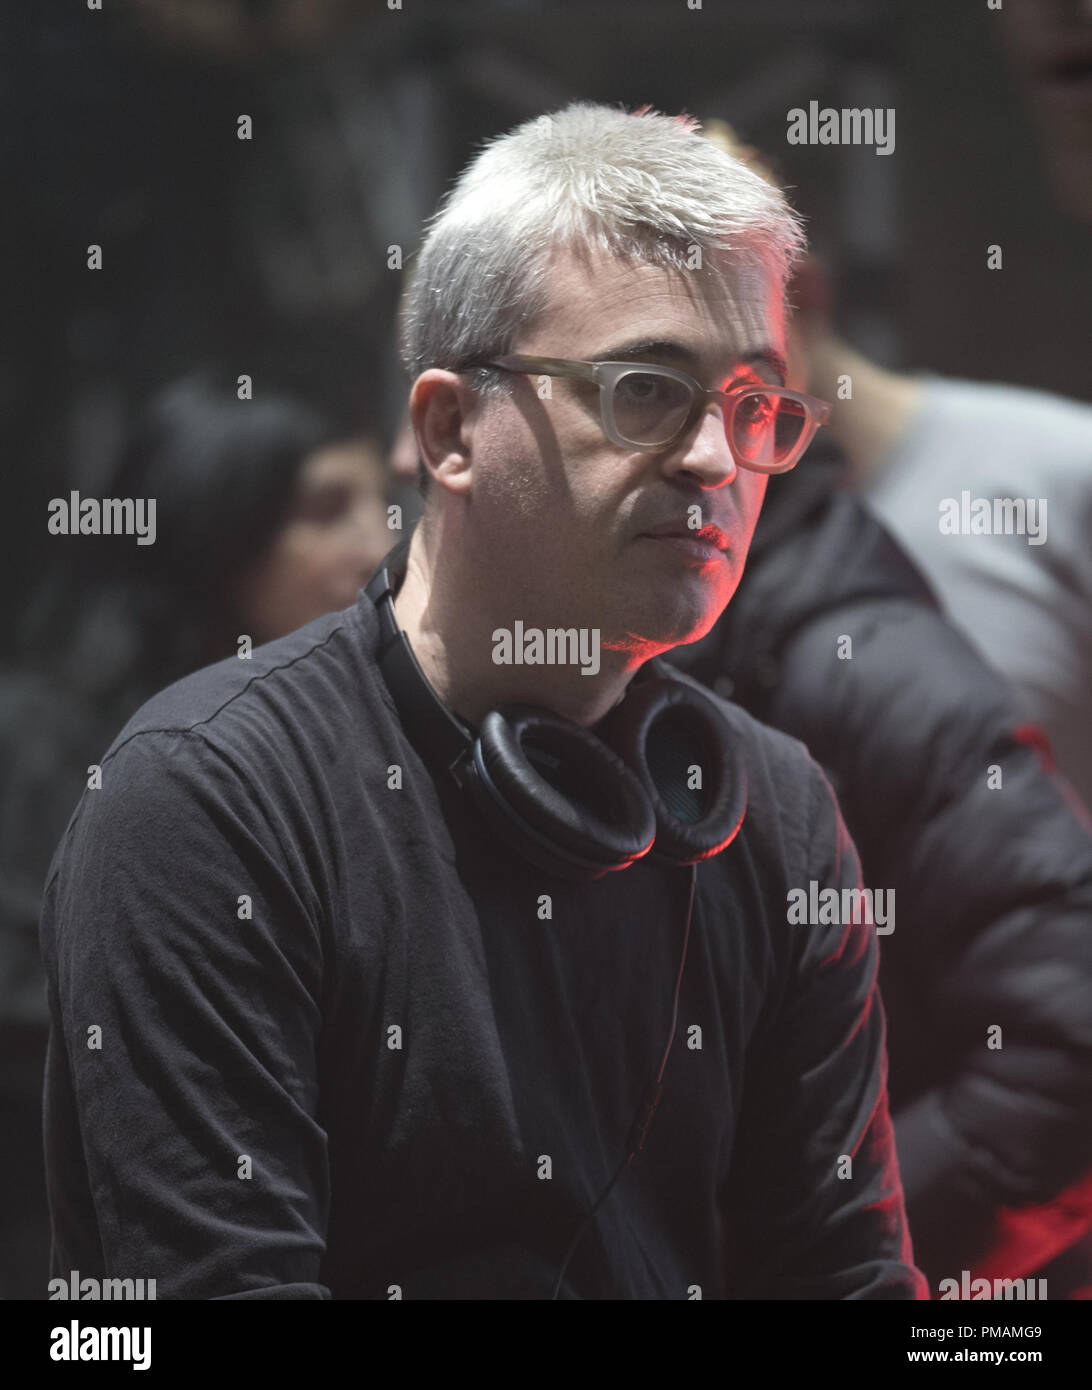 Director/Producer ALEX KURTZMAN on the set of 'The Mummy,' a spectacular, all-new cinematic version of the legend that has fascinated cultures all over the world since the dawn of civilization. - Stock Image